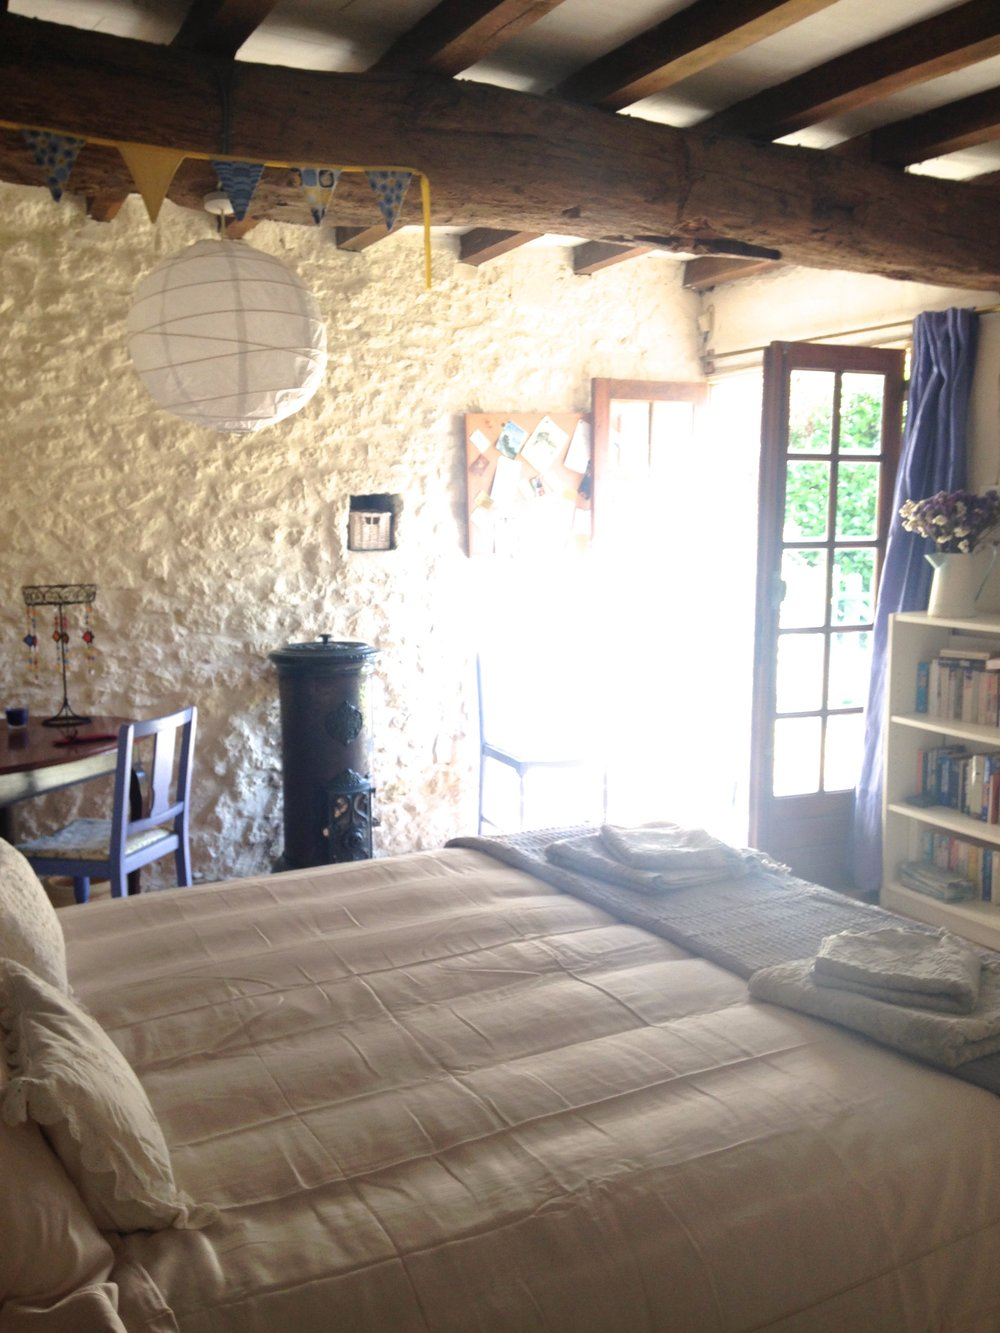 Sunlight French holiday bedroom